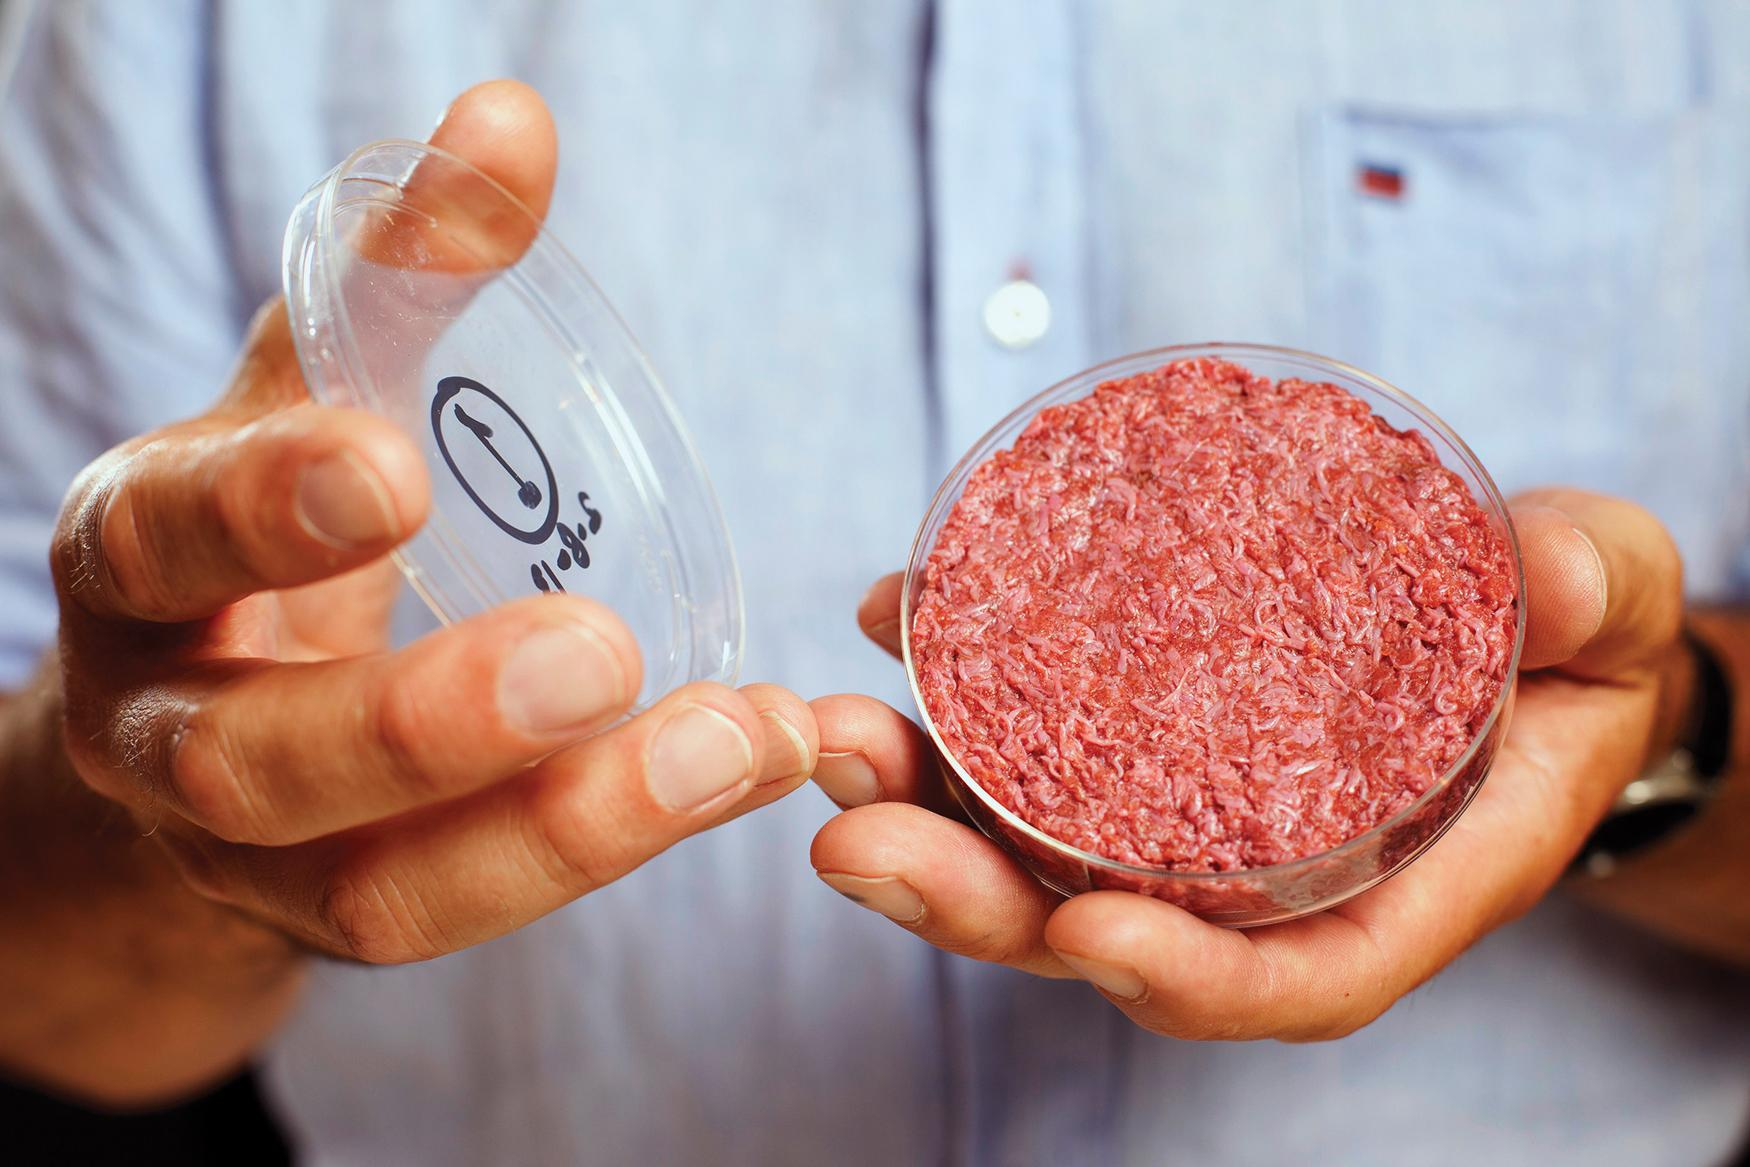 What Does It Take To Make Meat From Stem Cells?